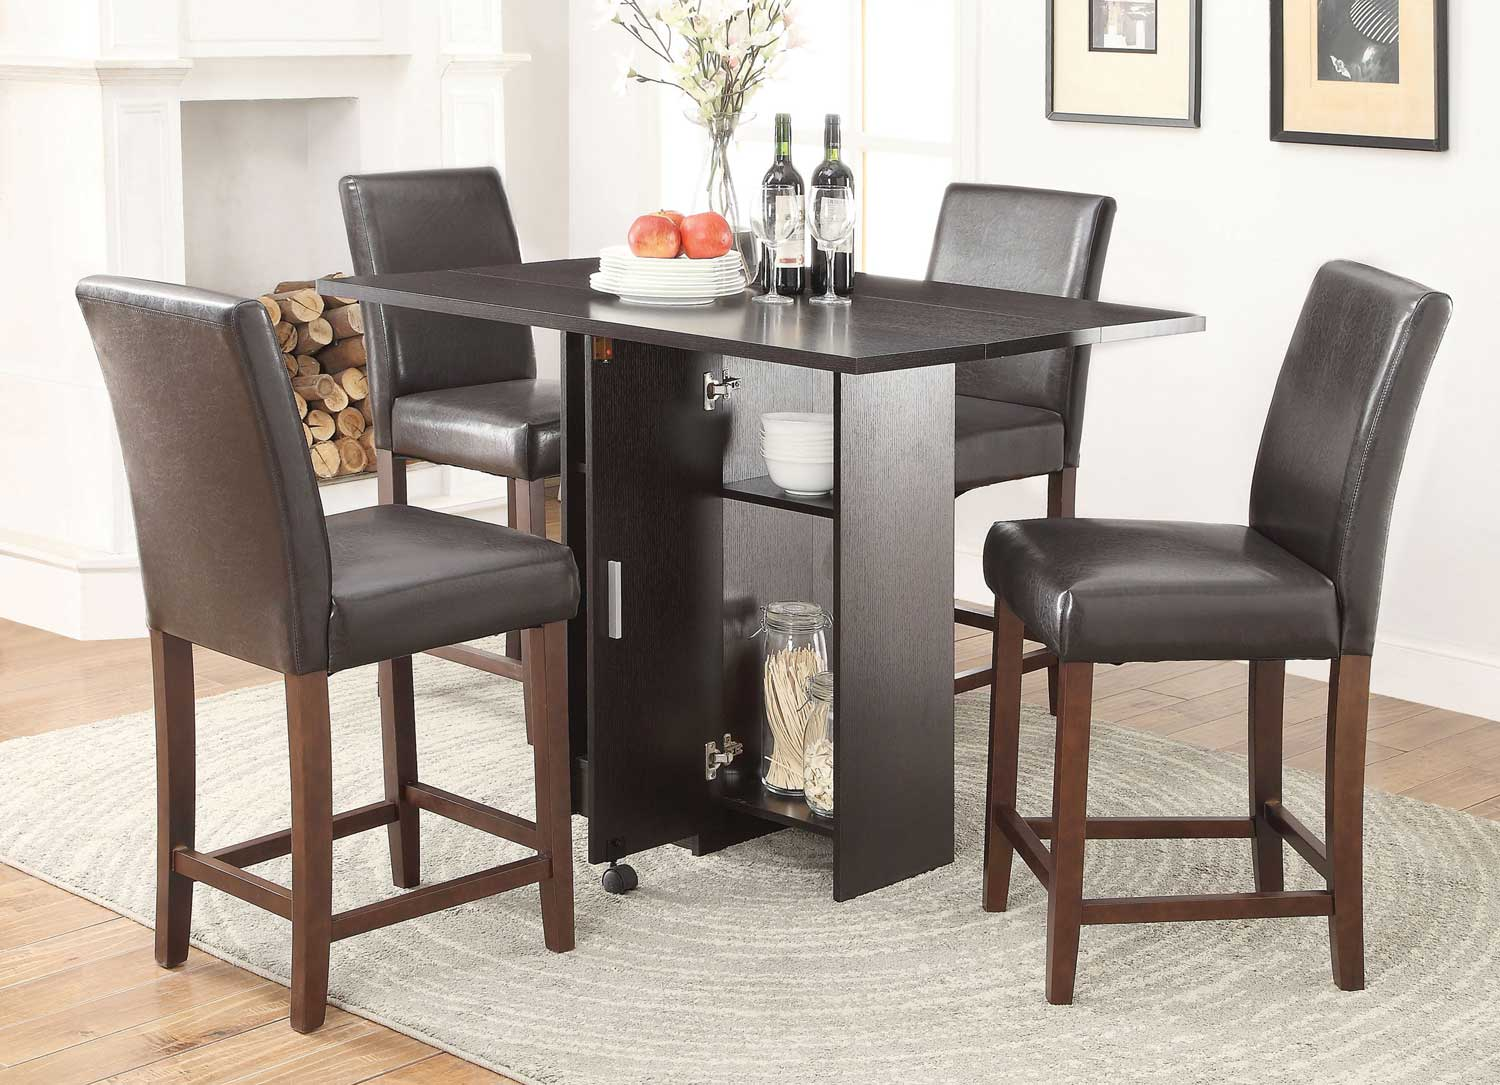 Coaster Vista Counter Height Dining Set - Red Cocoa